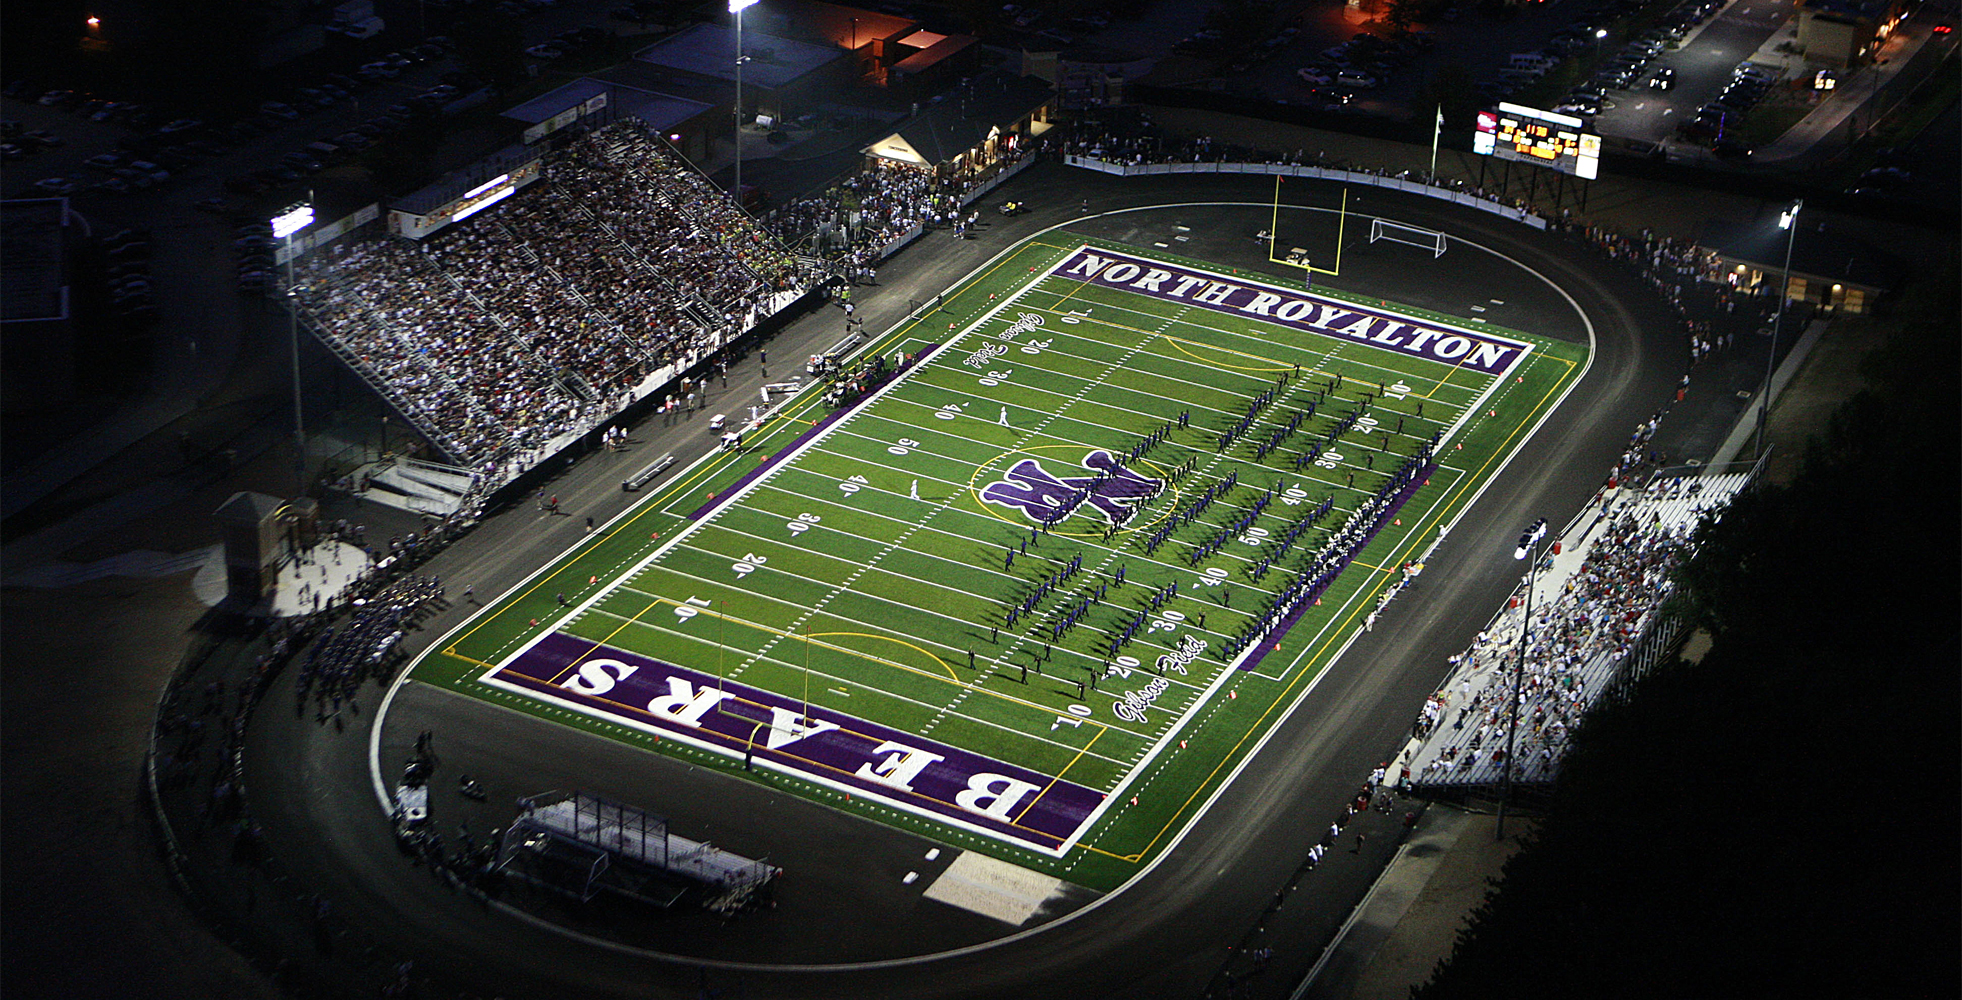 North Royalton High School Stadium